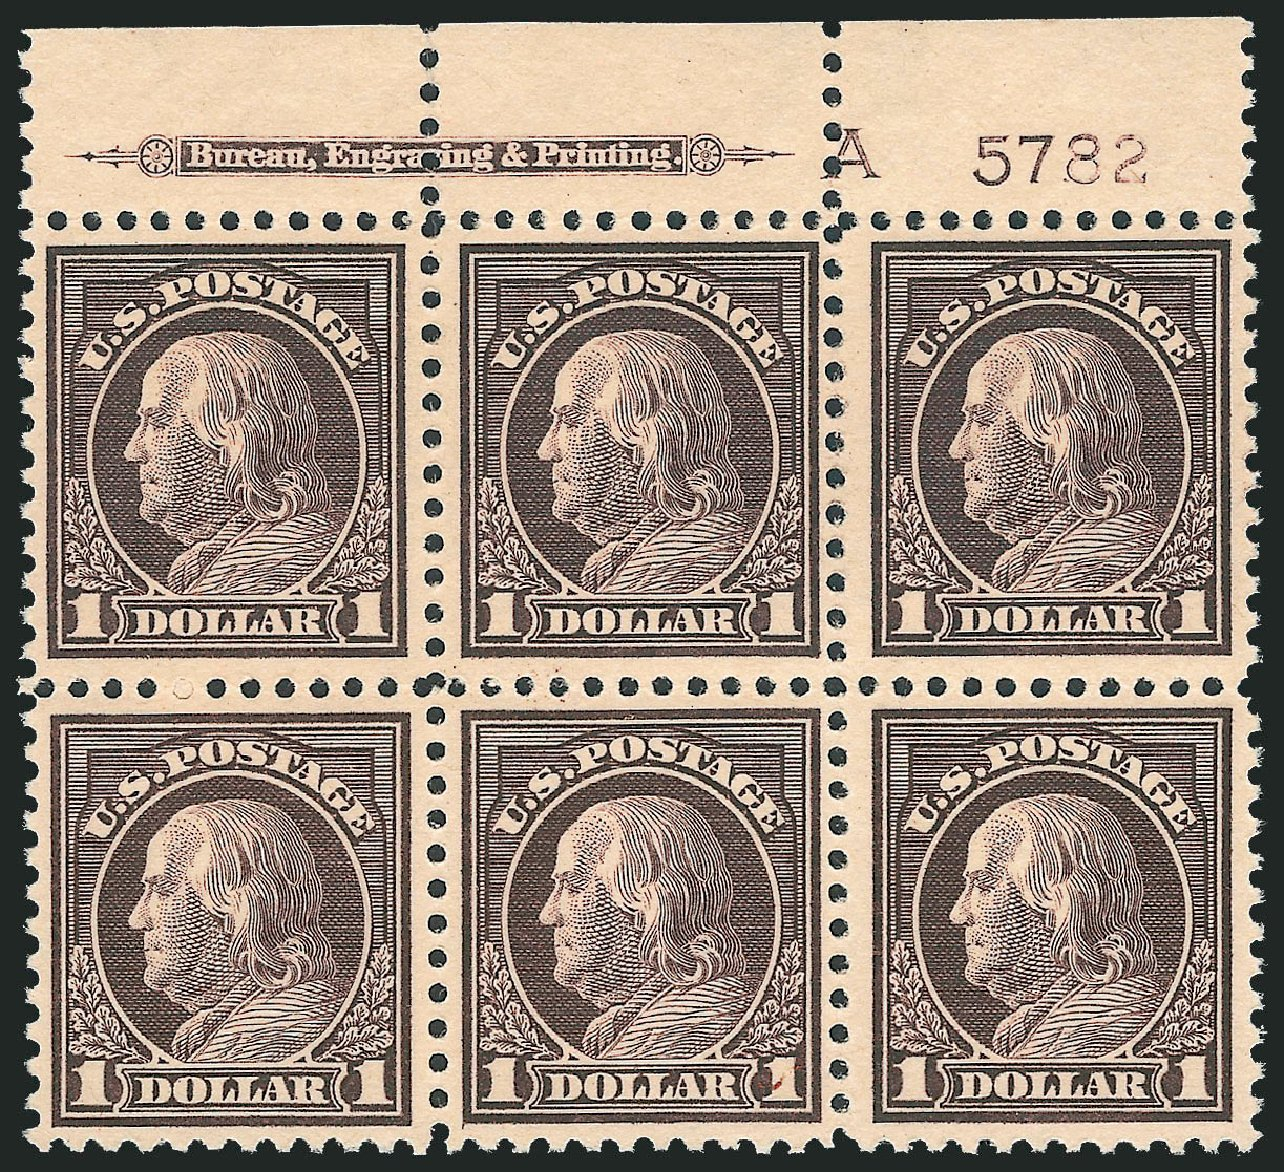 Price of US Stamps Scott Catalogue # 518 - US$1.00 1917 Franklin Perf 11. Robert Siegel Auction Galleries, Nov 2013, Sale 1061, Lot 3977